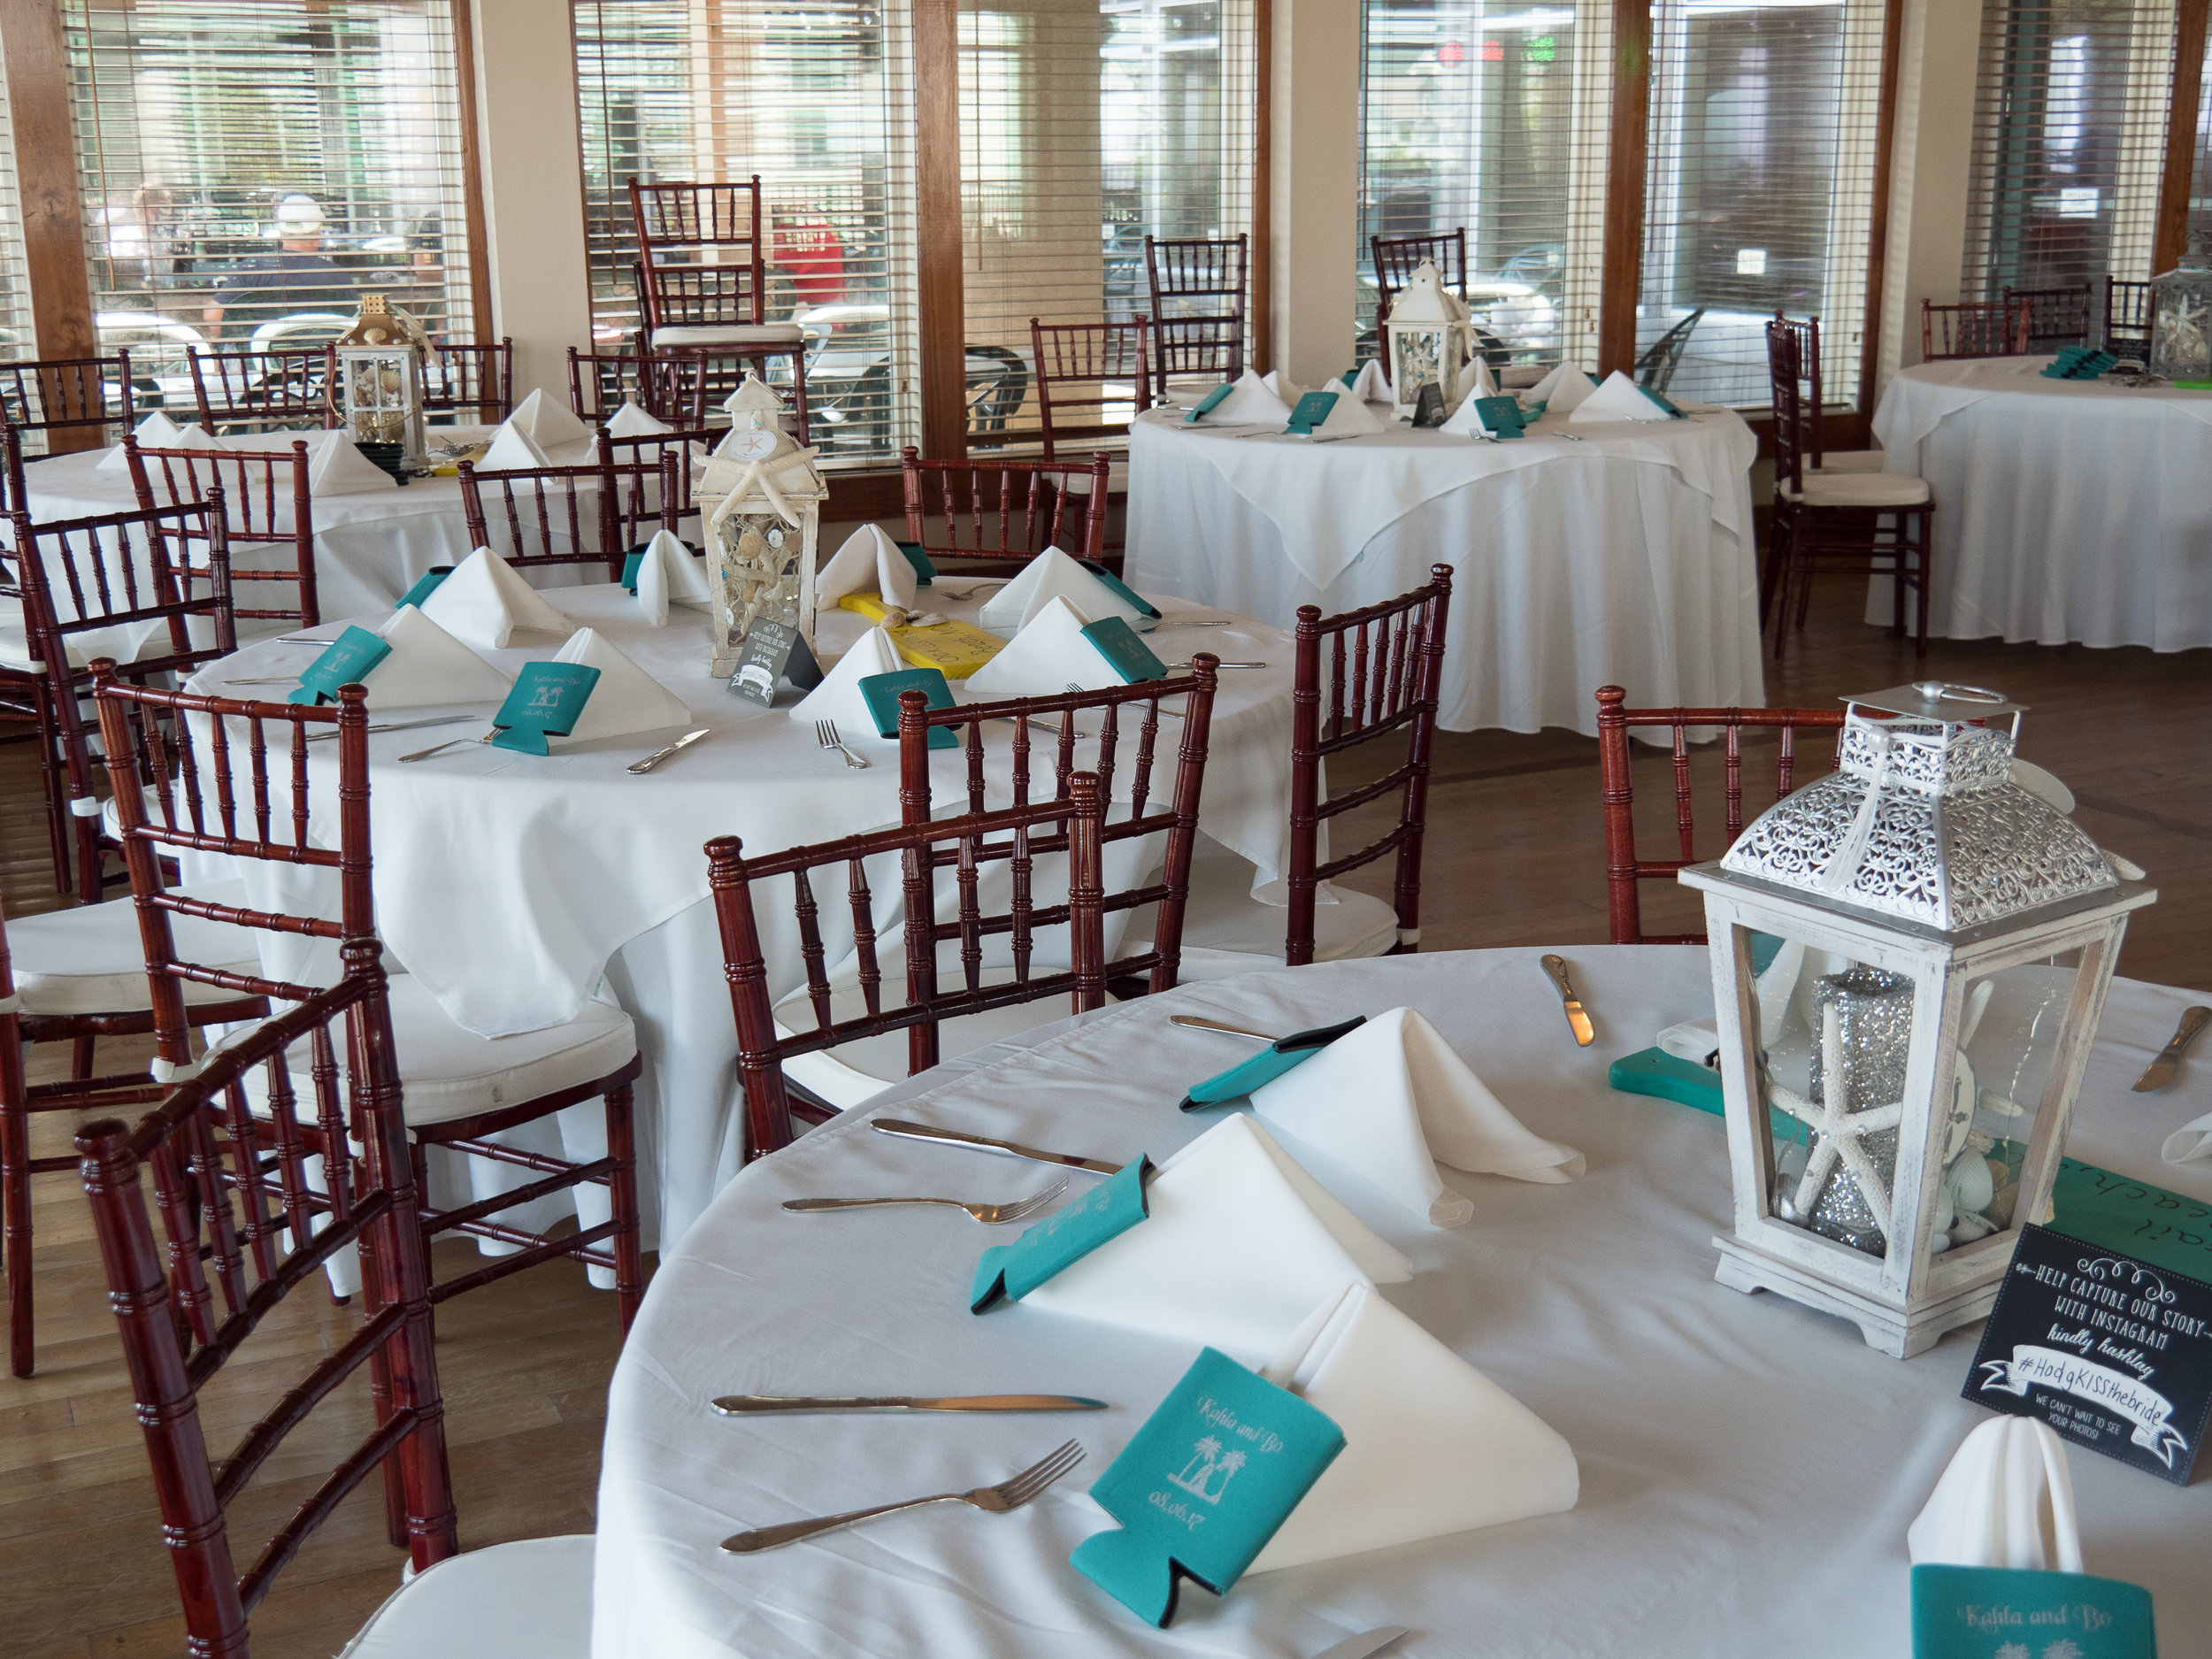 - Table settings for wedding at the Isles Restaurant in Ocean Isle Beach, NC. Billy Beach Photography.